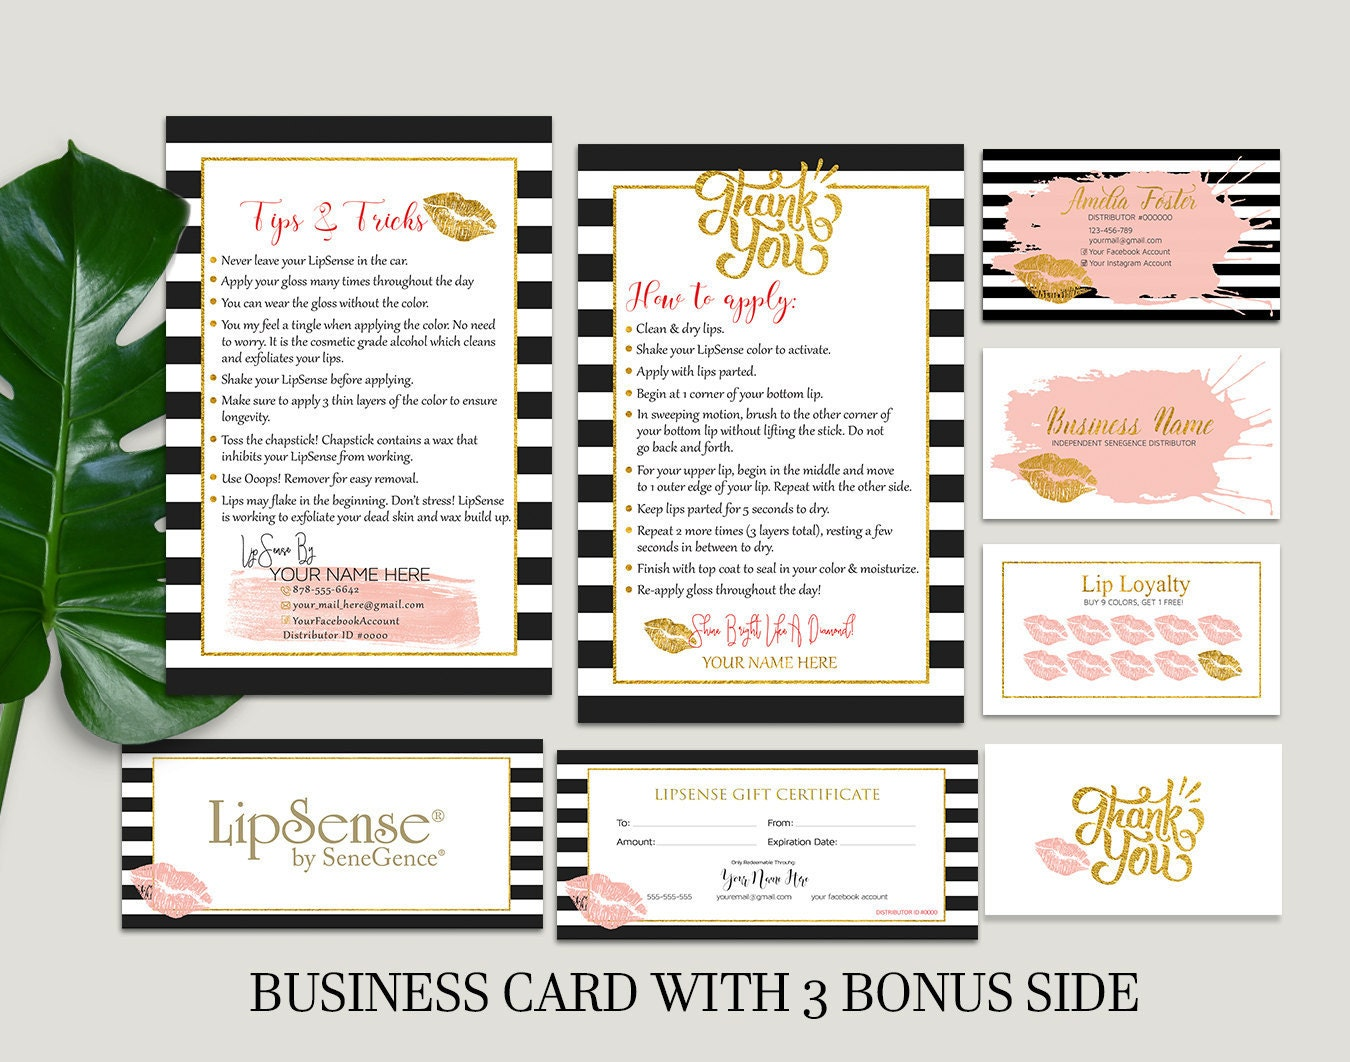 Unusual 1 Page Brochure Template Big 1 Year Experience Java Resume Format Clean 1.5 Button Template 10 Business Card Template Old 100th Day Hat Template Pink101 Modern Resume Samples Gift Certificate | Etsy